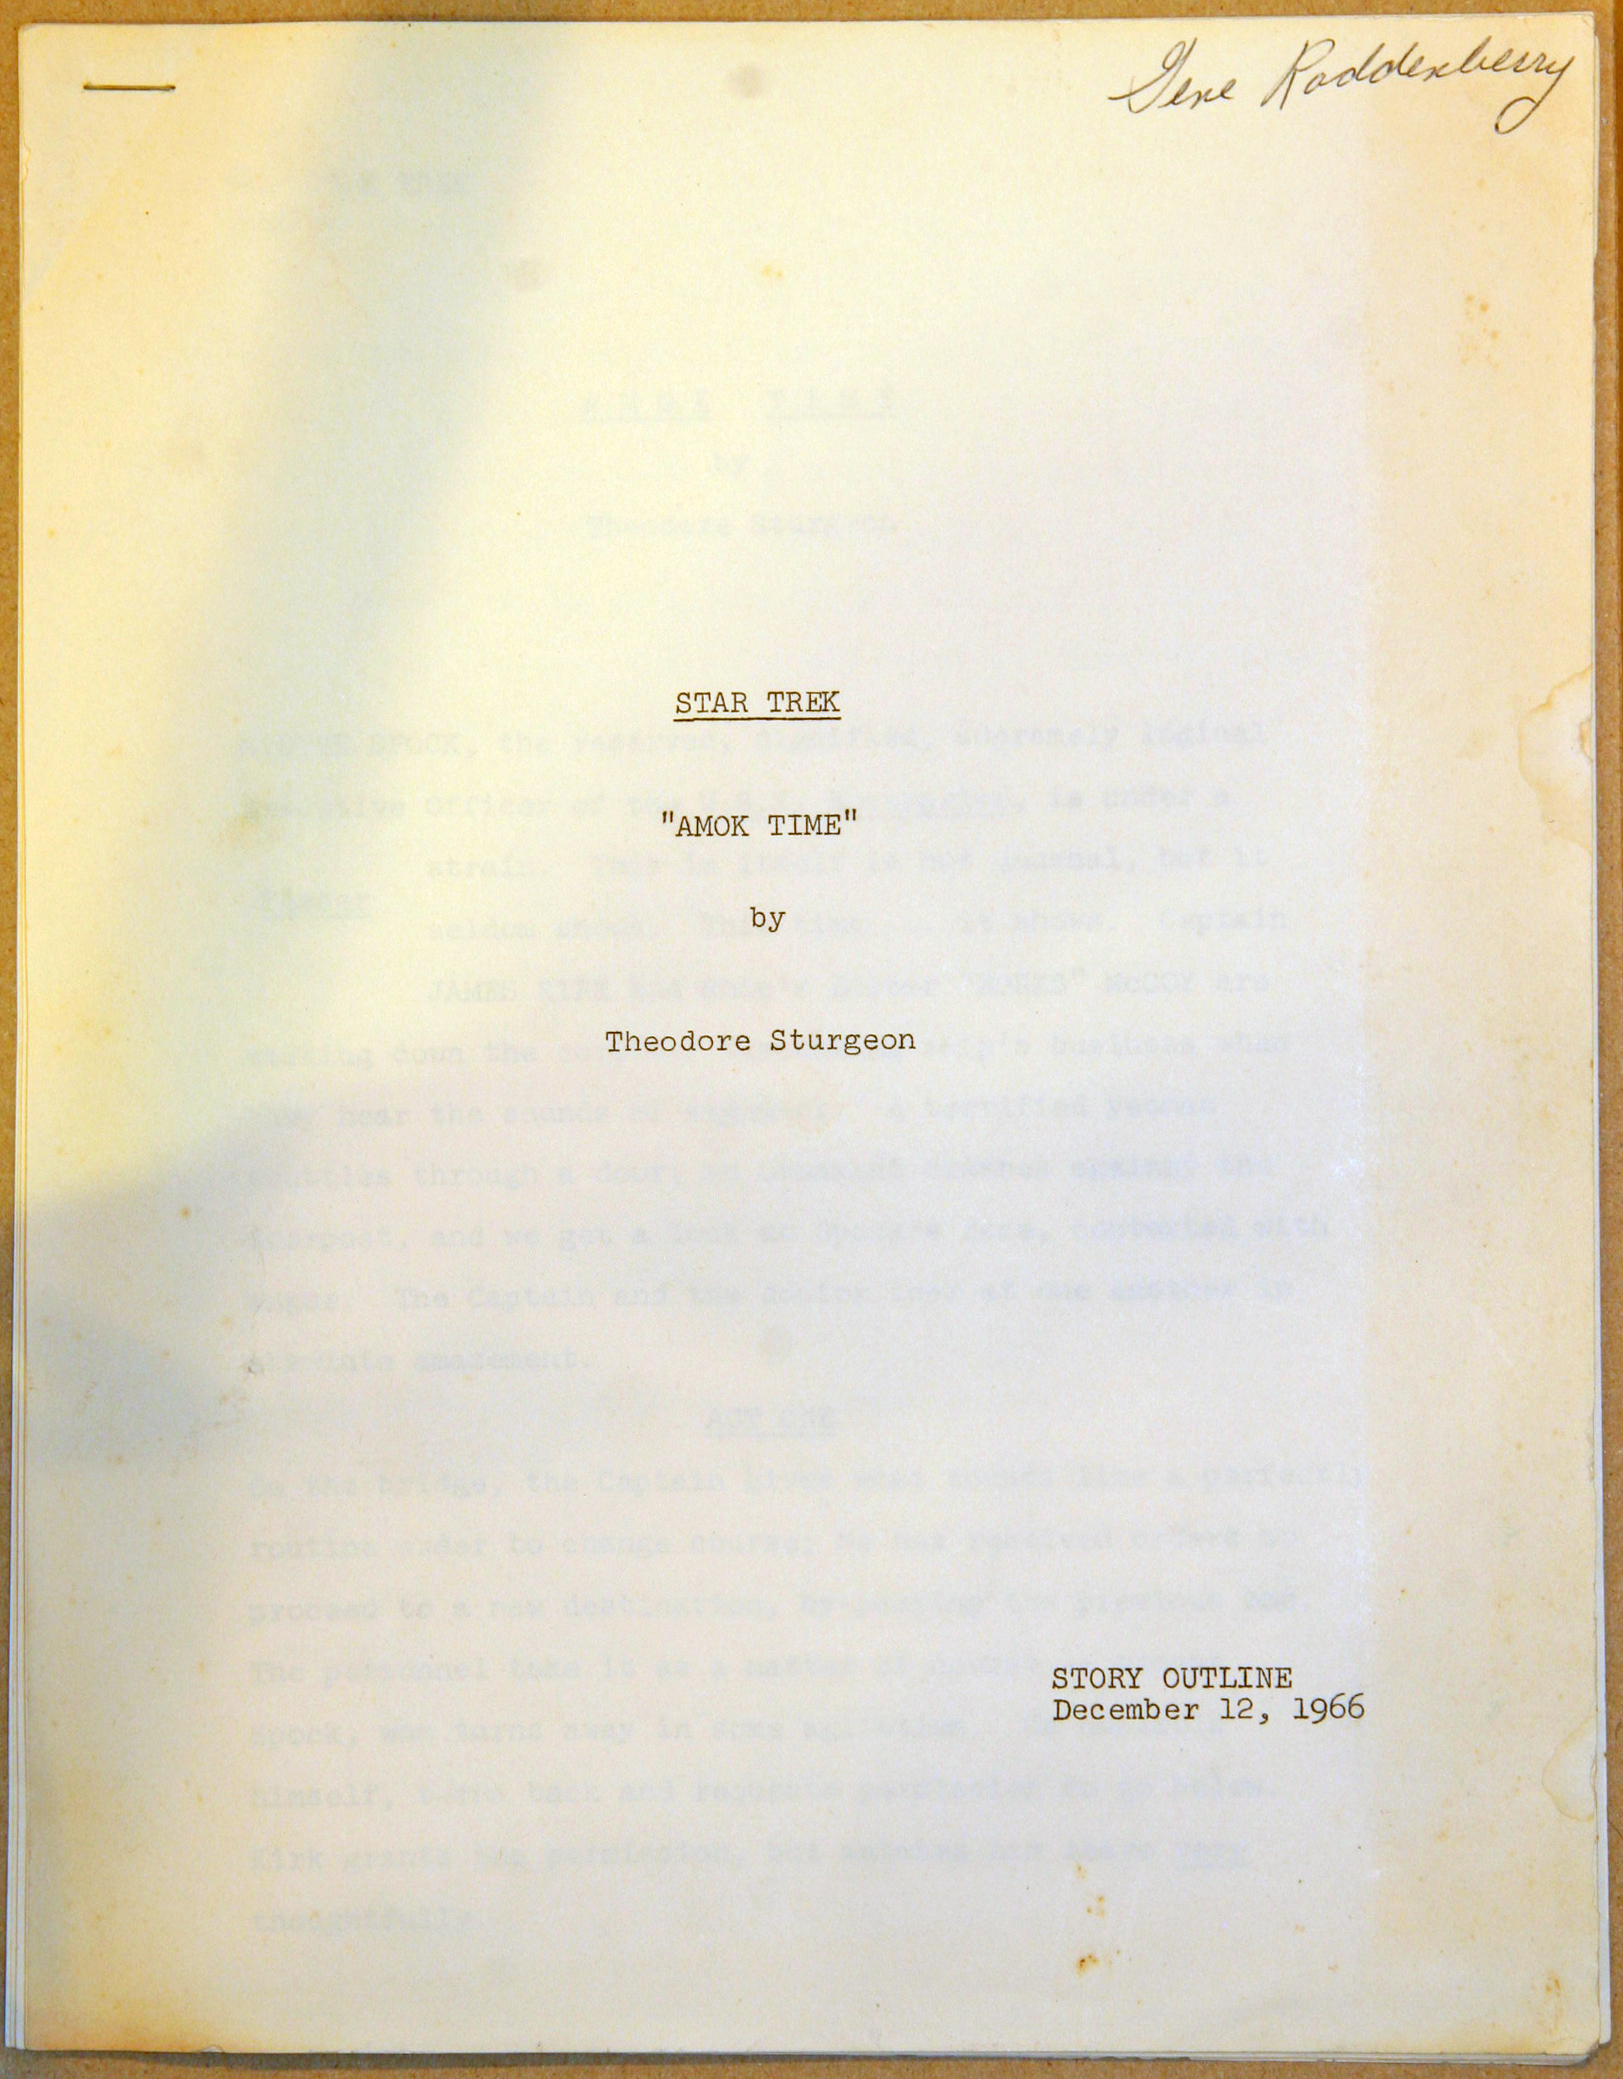 The cover page of the original story outline for the Star Trek episode Amok Time, written by Theodore Sturgeon. The name Gene Roddenberry is written in the corner, and the outline is dated December 12, 1966.